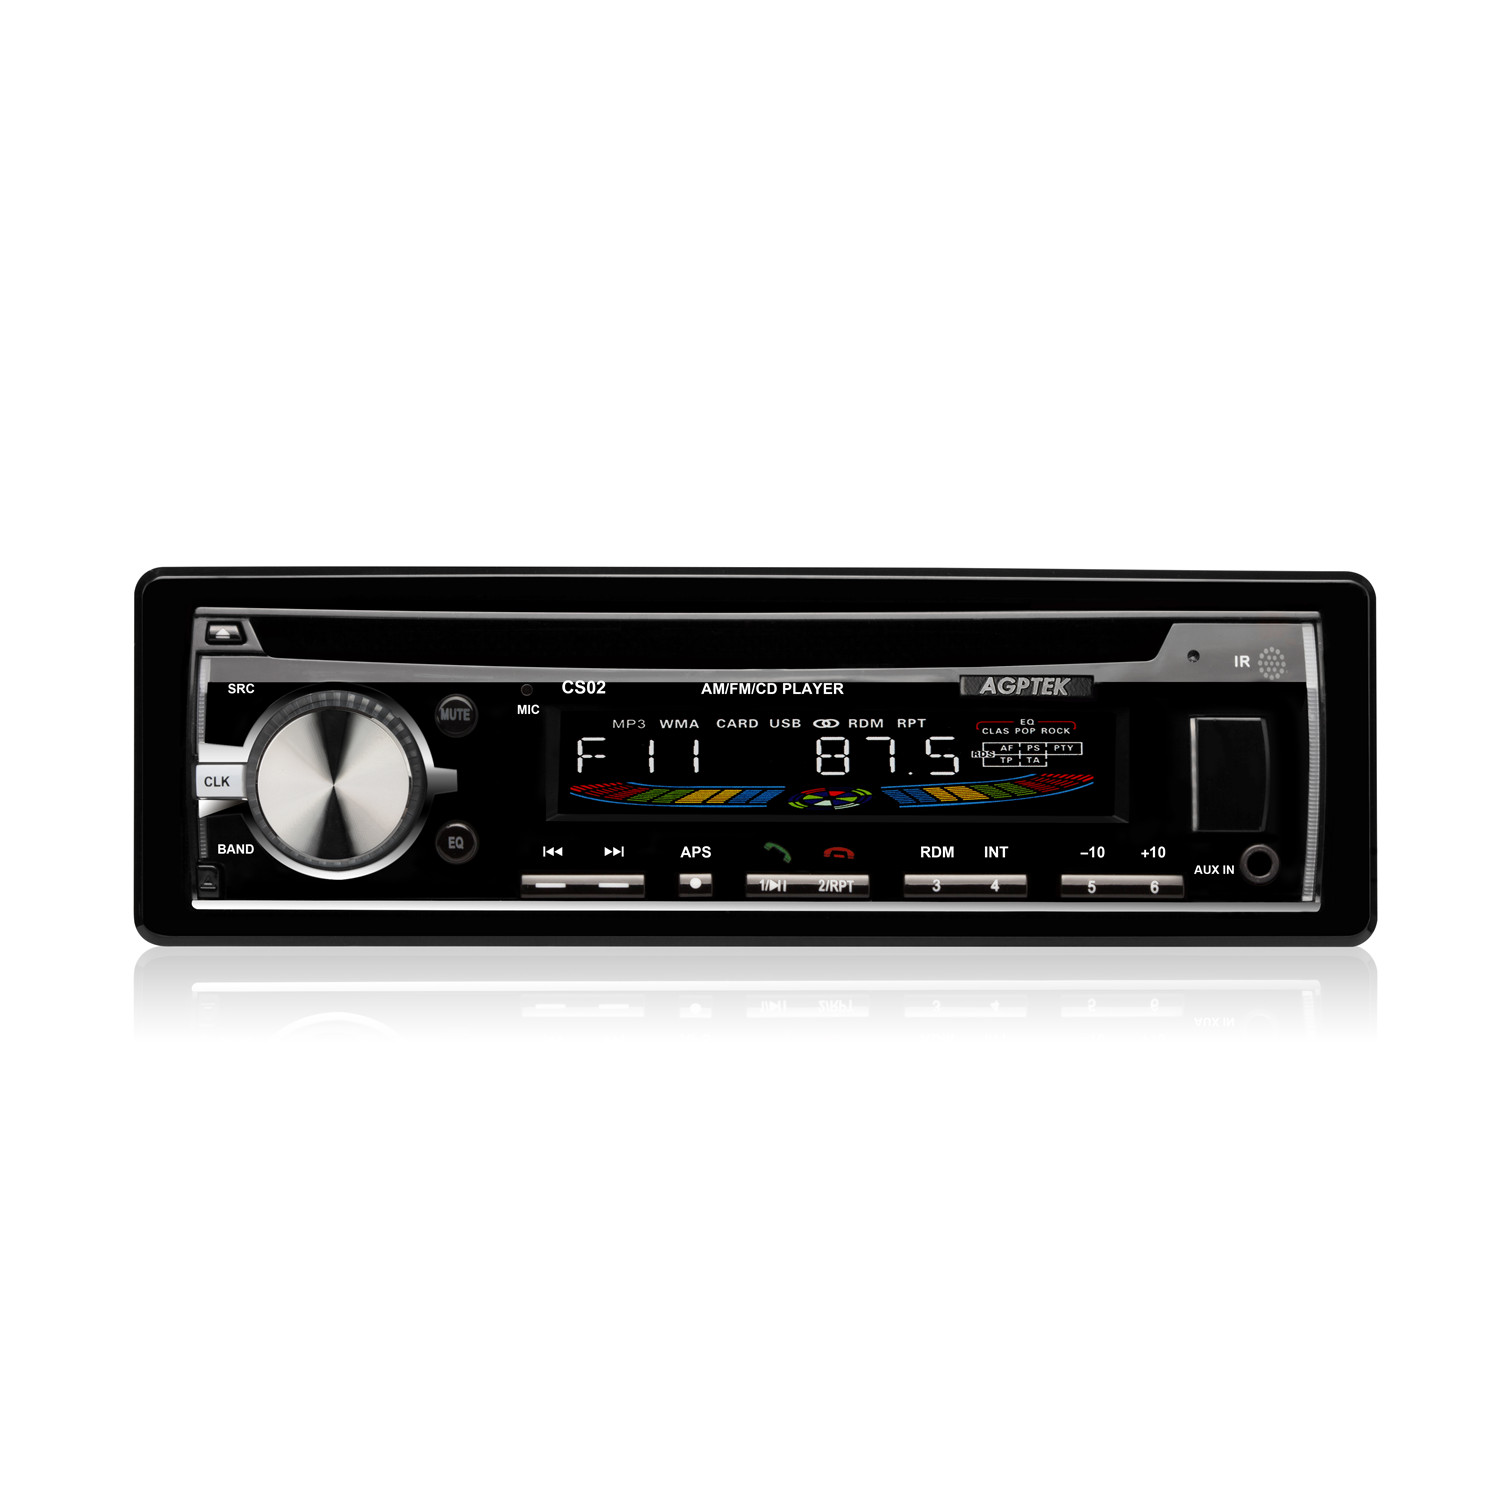 AGPtEK CS02 In-Dash CD/MP3/USB Car Stereo Receiver with Bluetooth, Remote Control,and USB/AUX/SD/AM/FM ,Black